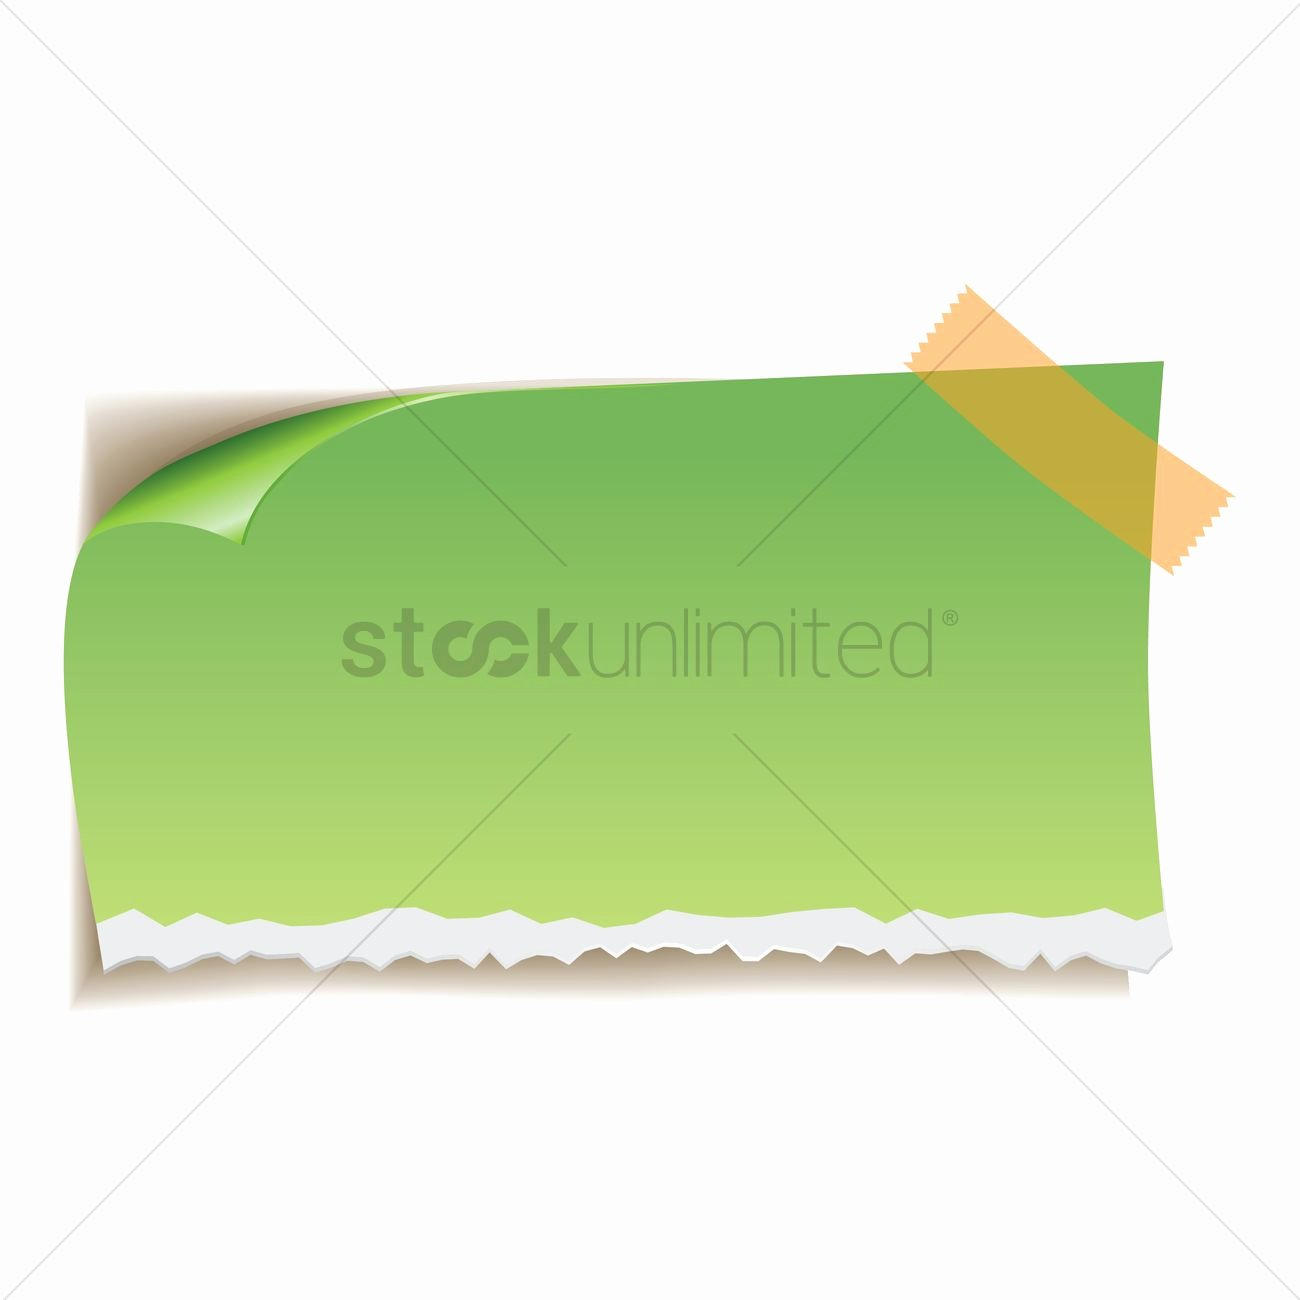 Sticky Notes Vector Fresh Sticky Note Vector Image